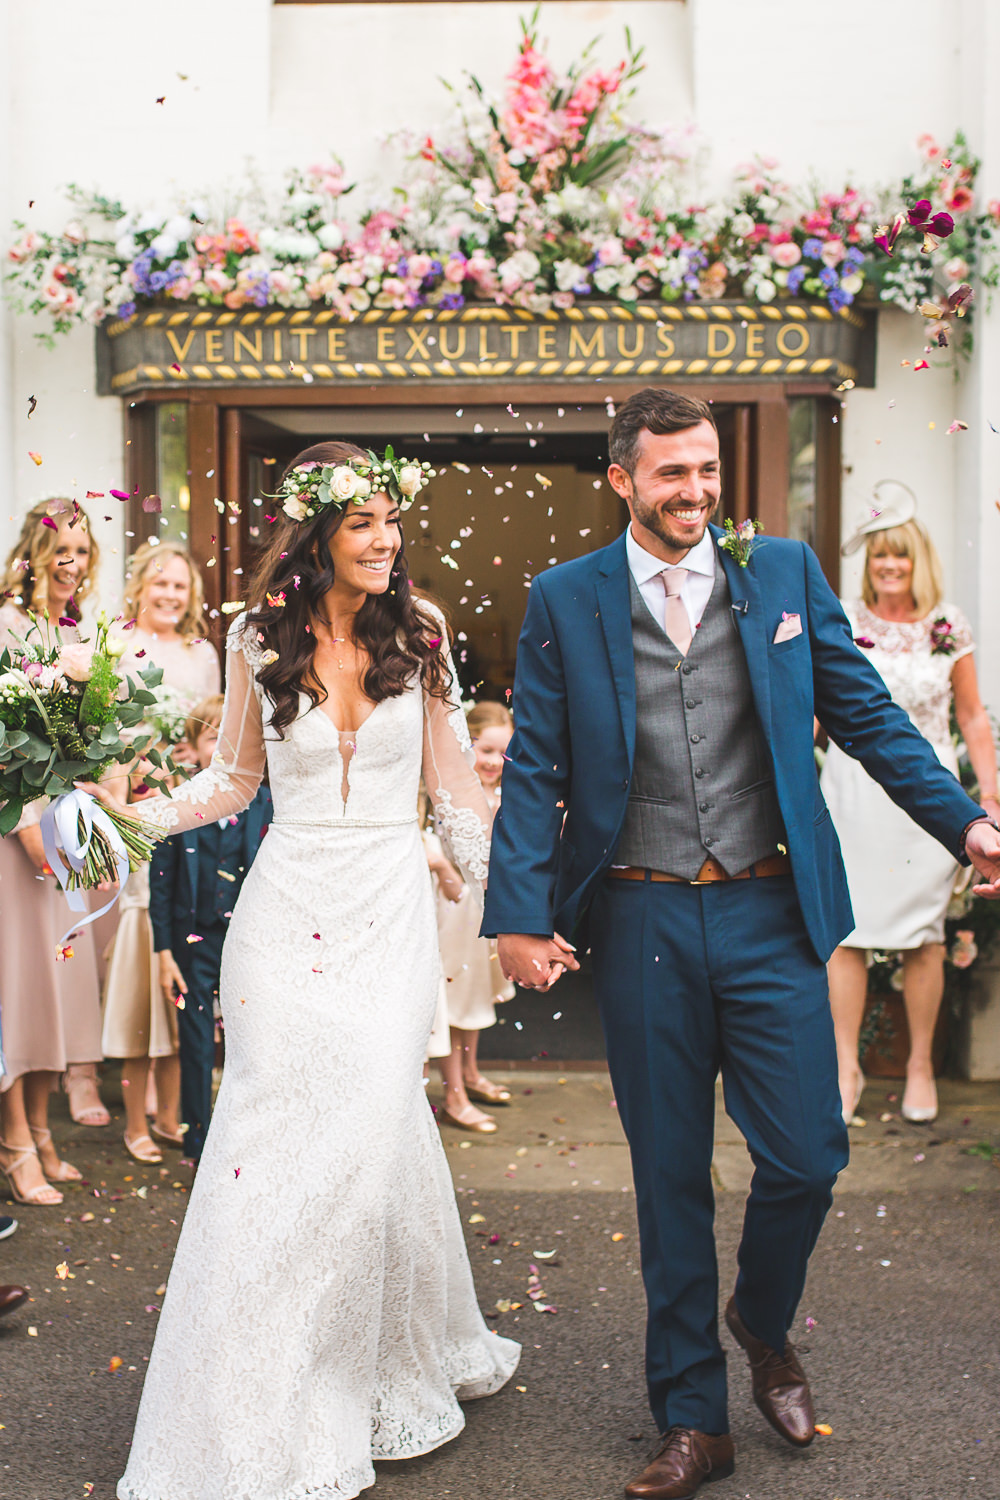 Spring Boho Festival Themed Wedding With Flower Crowns Pastel